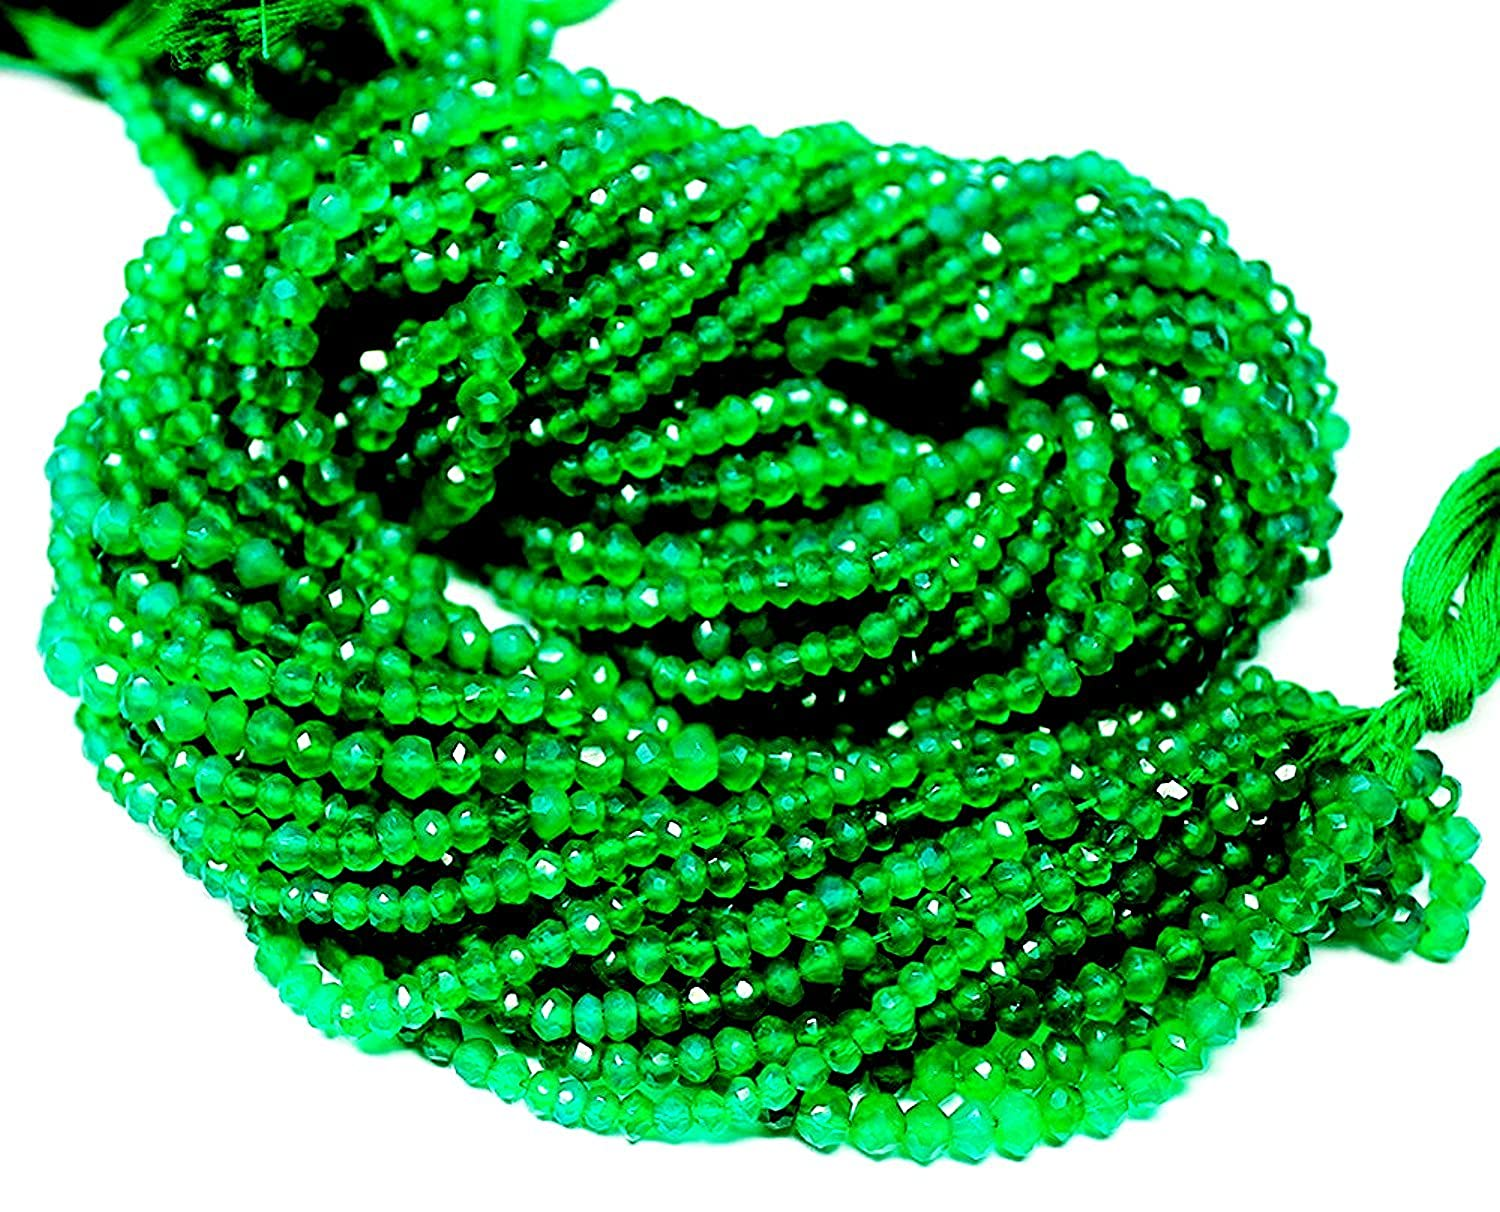 Be You 3-4mm Faceted Rondelle Natural Green Onyx Gemstone Beads 13 Strand ST-GJ-S-56